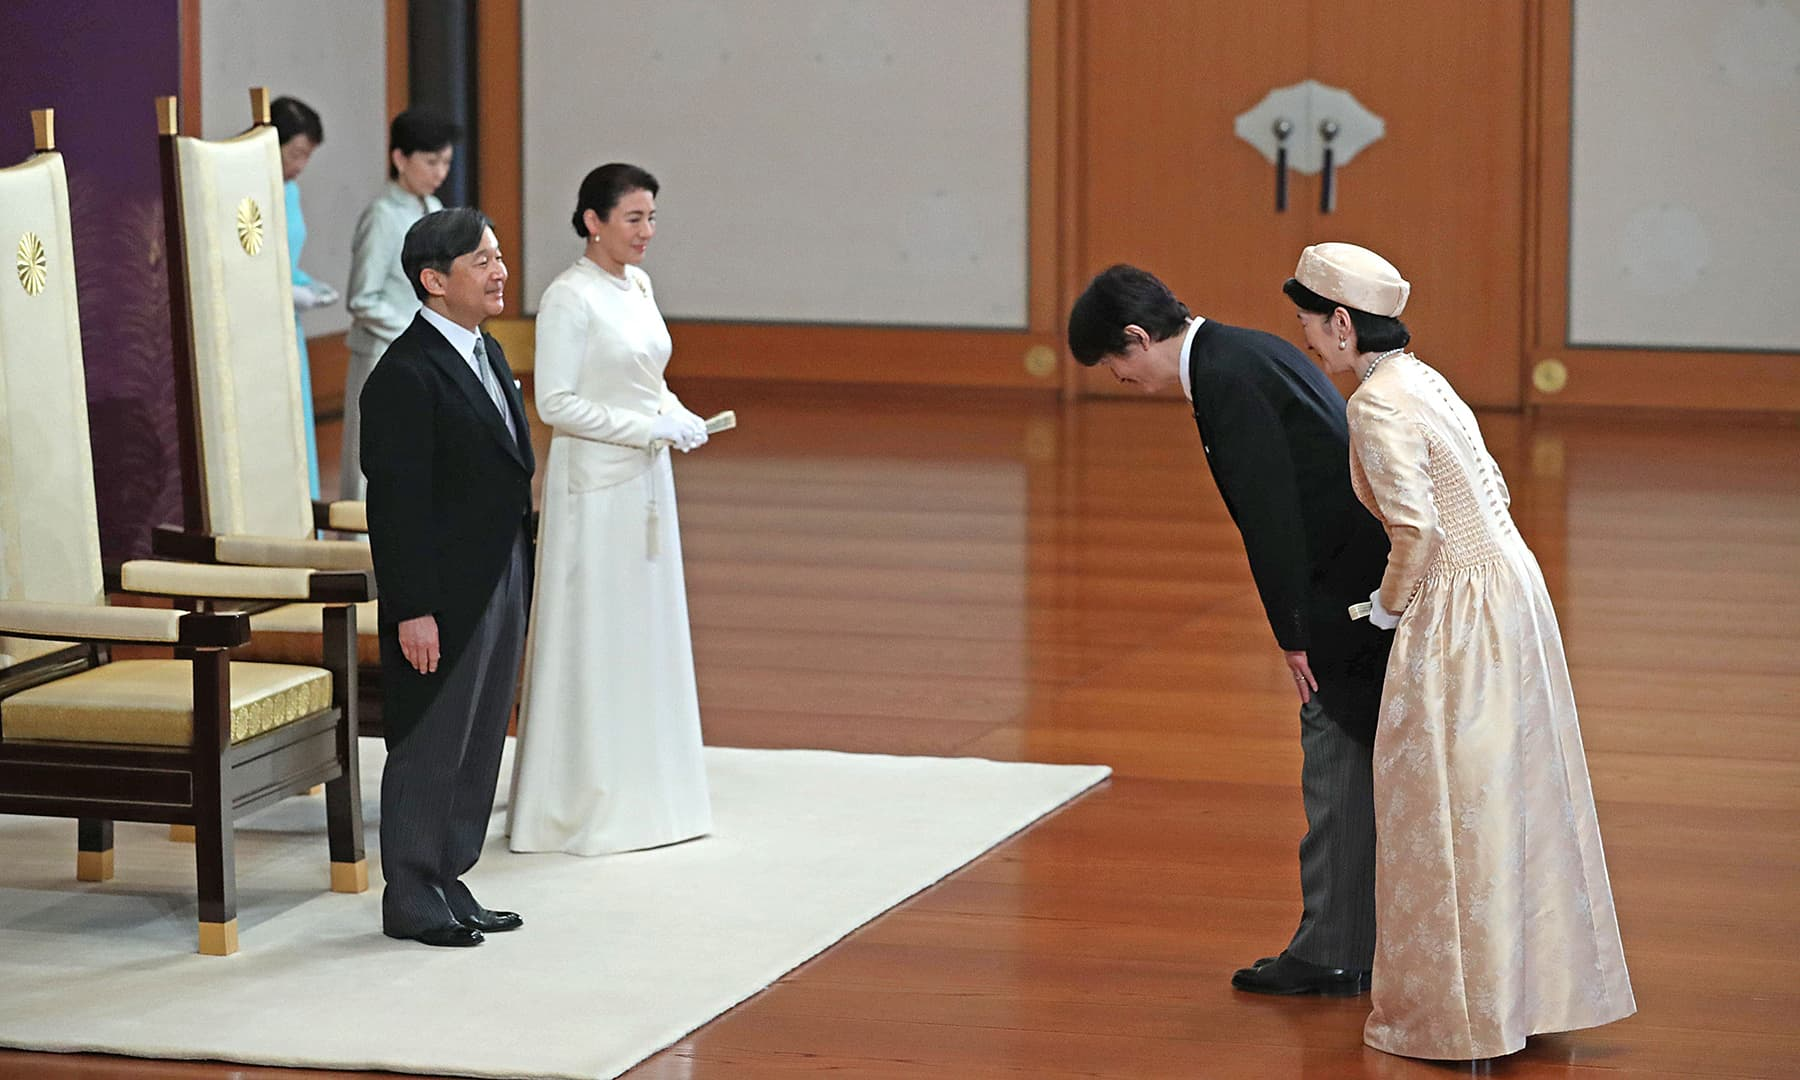 Japan's new Emperor Naruhito (L) and Empress Masako (2nd L) listen to congratulatory words from Crown Prince Akishino (2nd R) and Crown Princess Kiko (R) during an event to receive a celebration of the accession to the throne at the Imperial Palace in Tokyo on May 1, 2019. — AFP